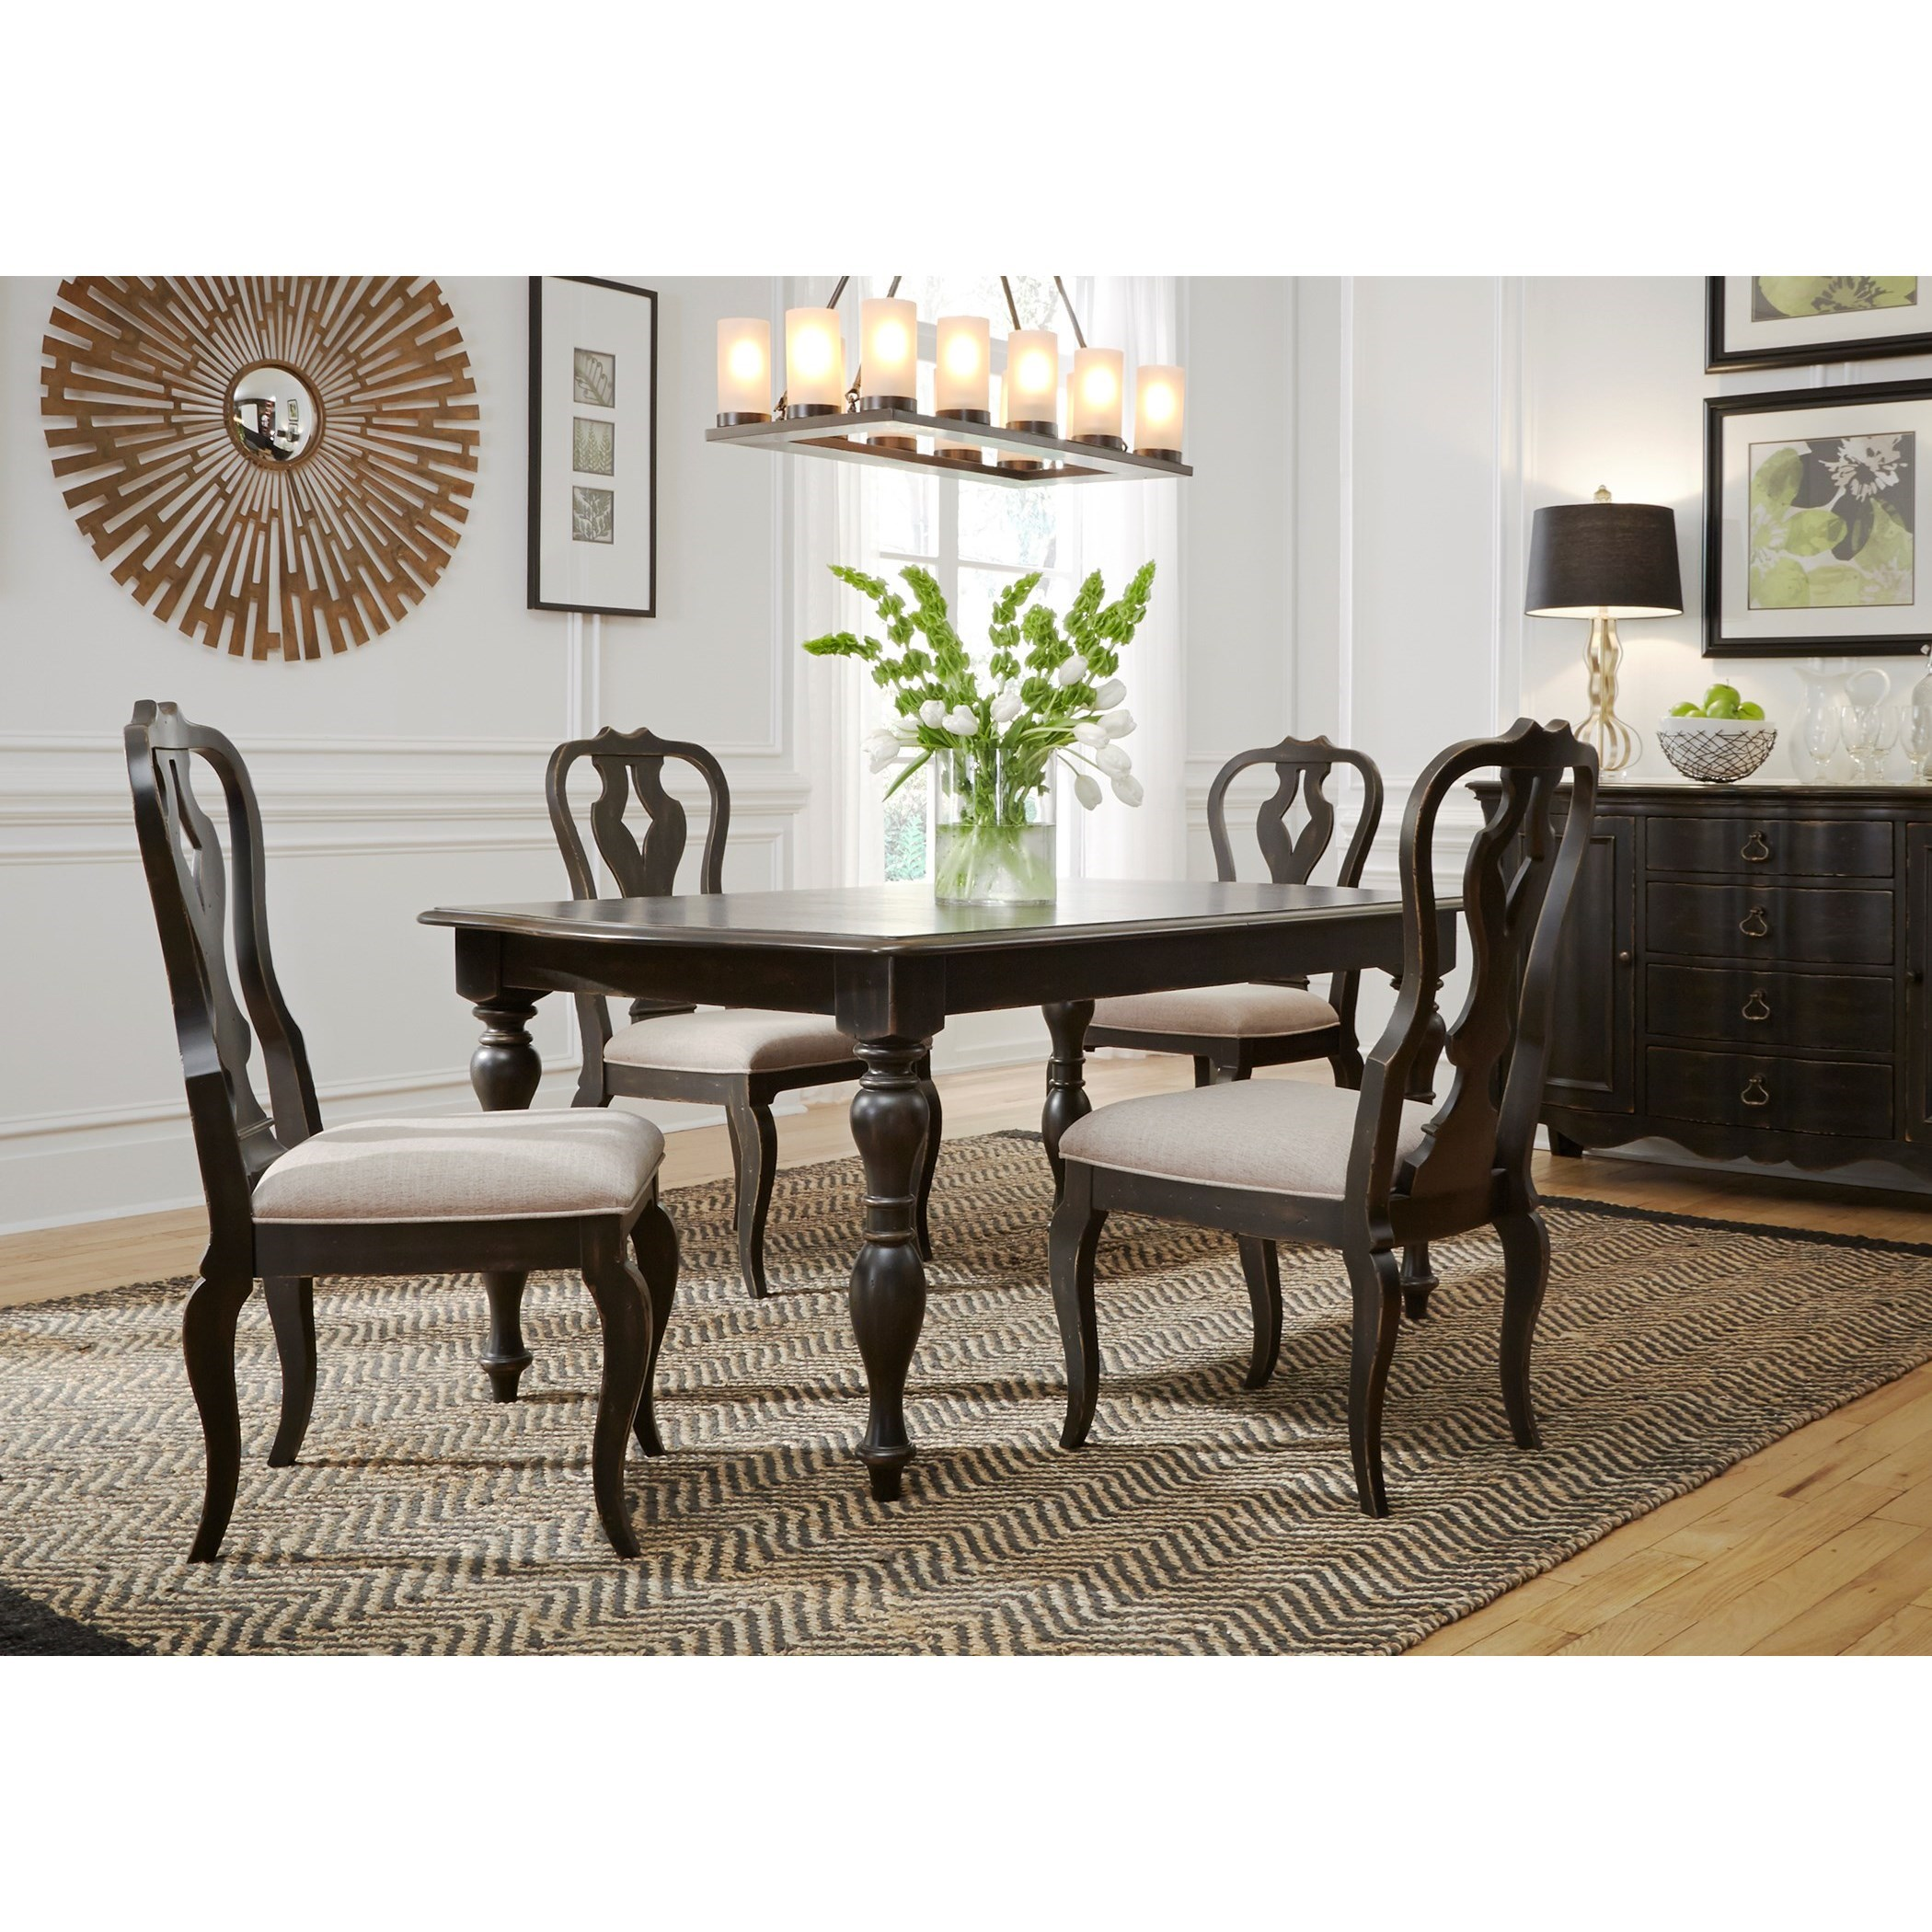 Chesapeake Rectangular Dining Table and Chair Set by Liberty Furniture at Northeast Factory Direct